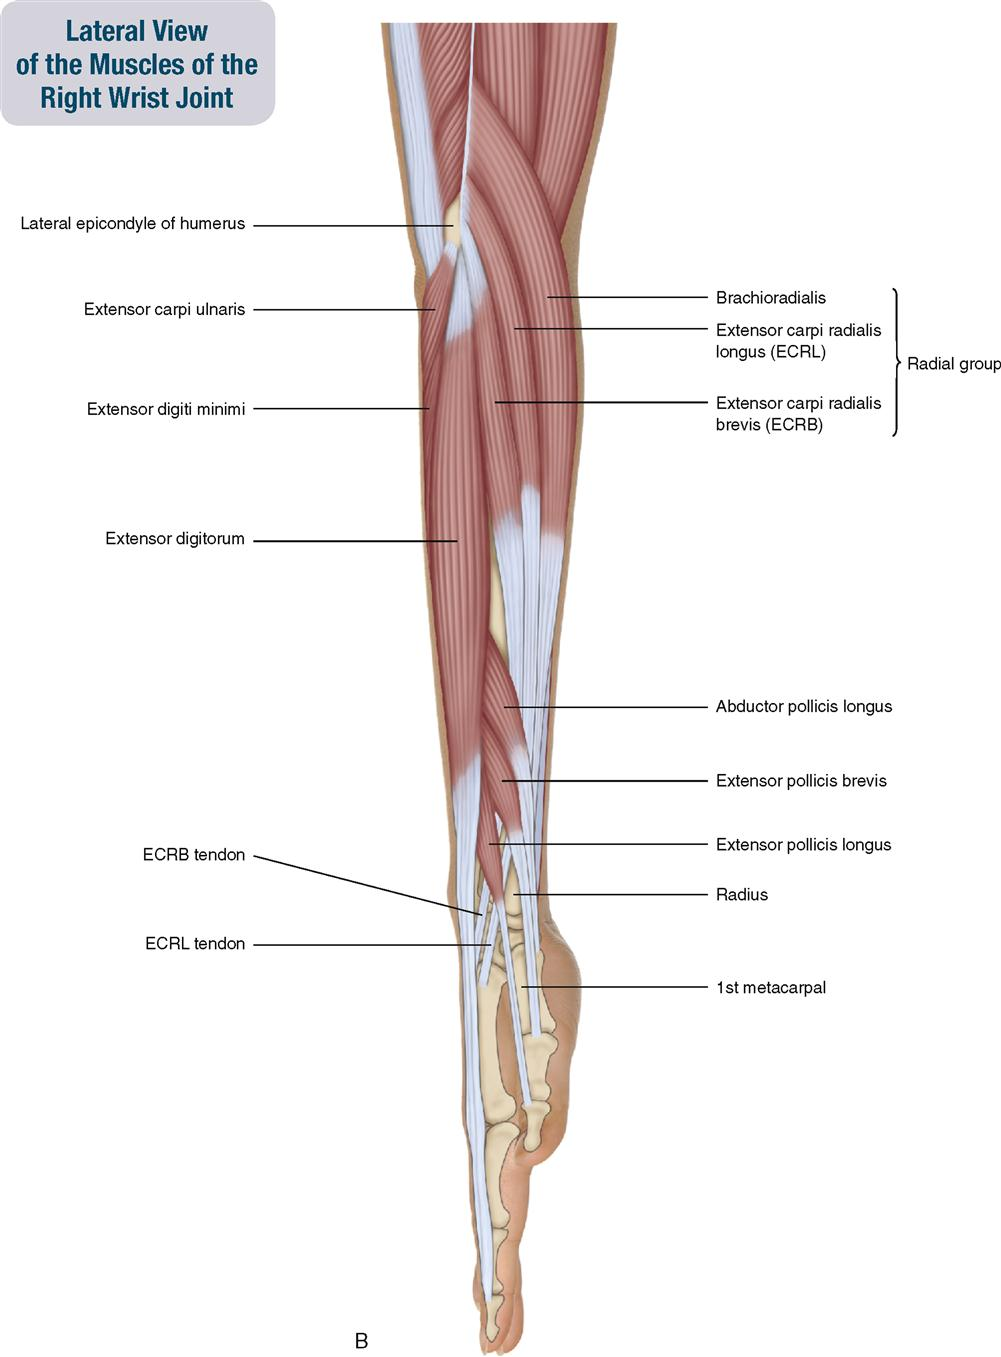 hight resolution of figure 7 3 a medial view of the muscles of the right wrist joint b lateral view of the muscles of the right wrist joint